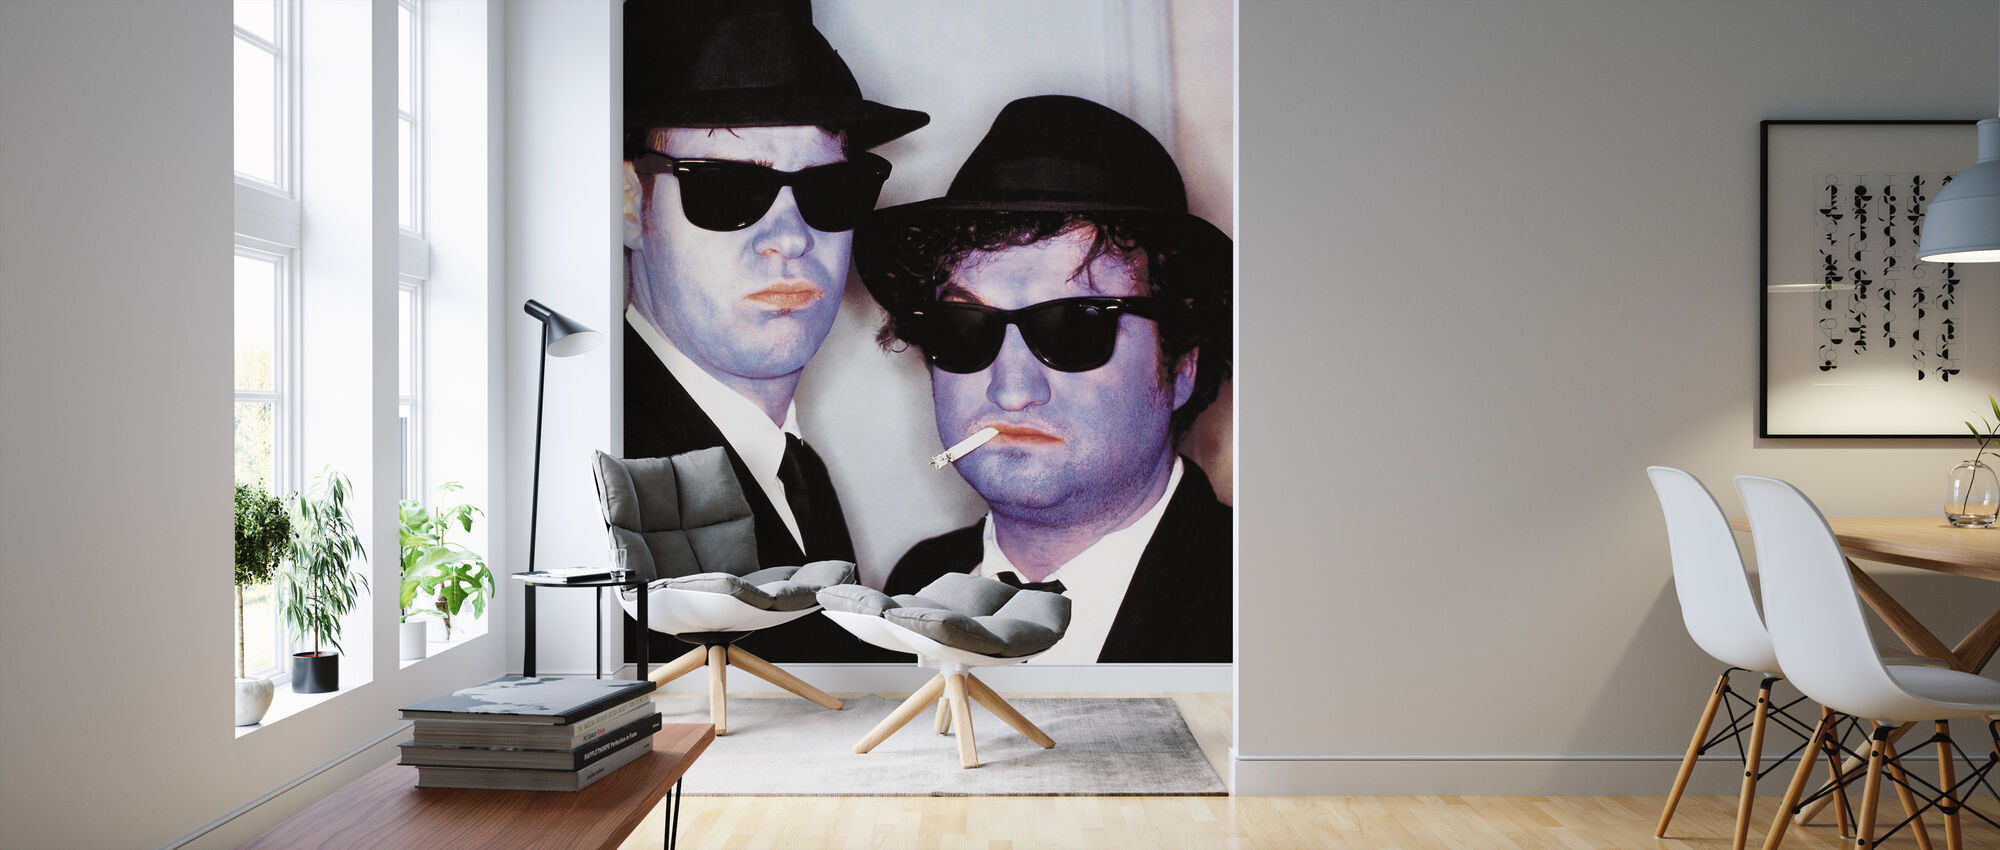 Blues Brothers - Wallpaper - Living Room